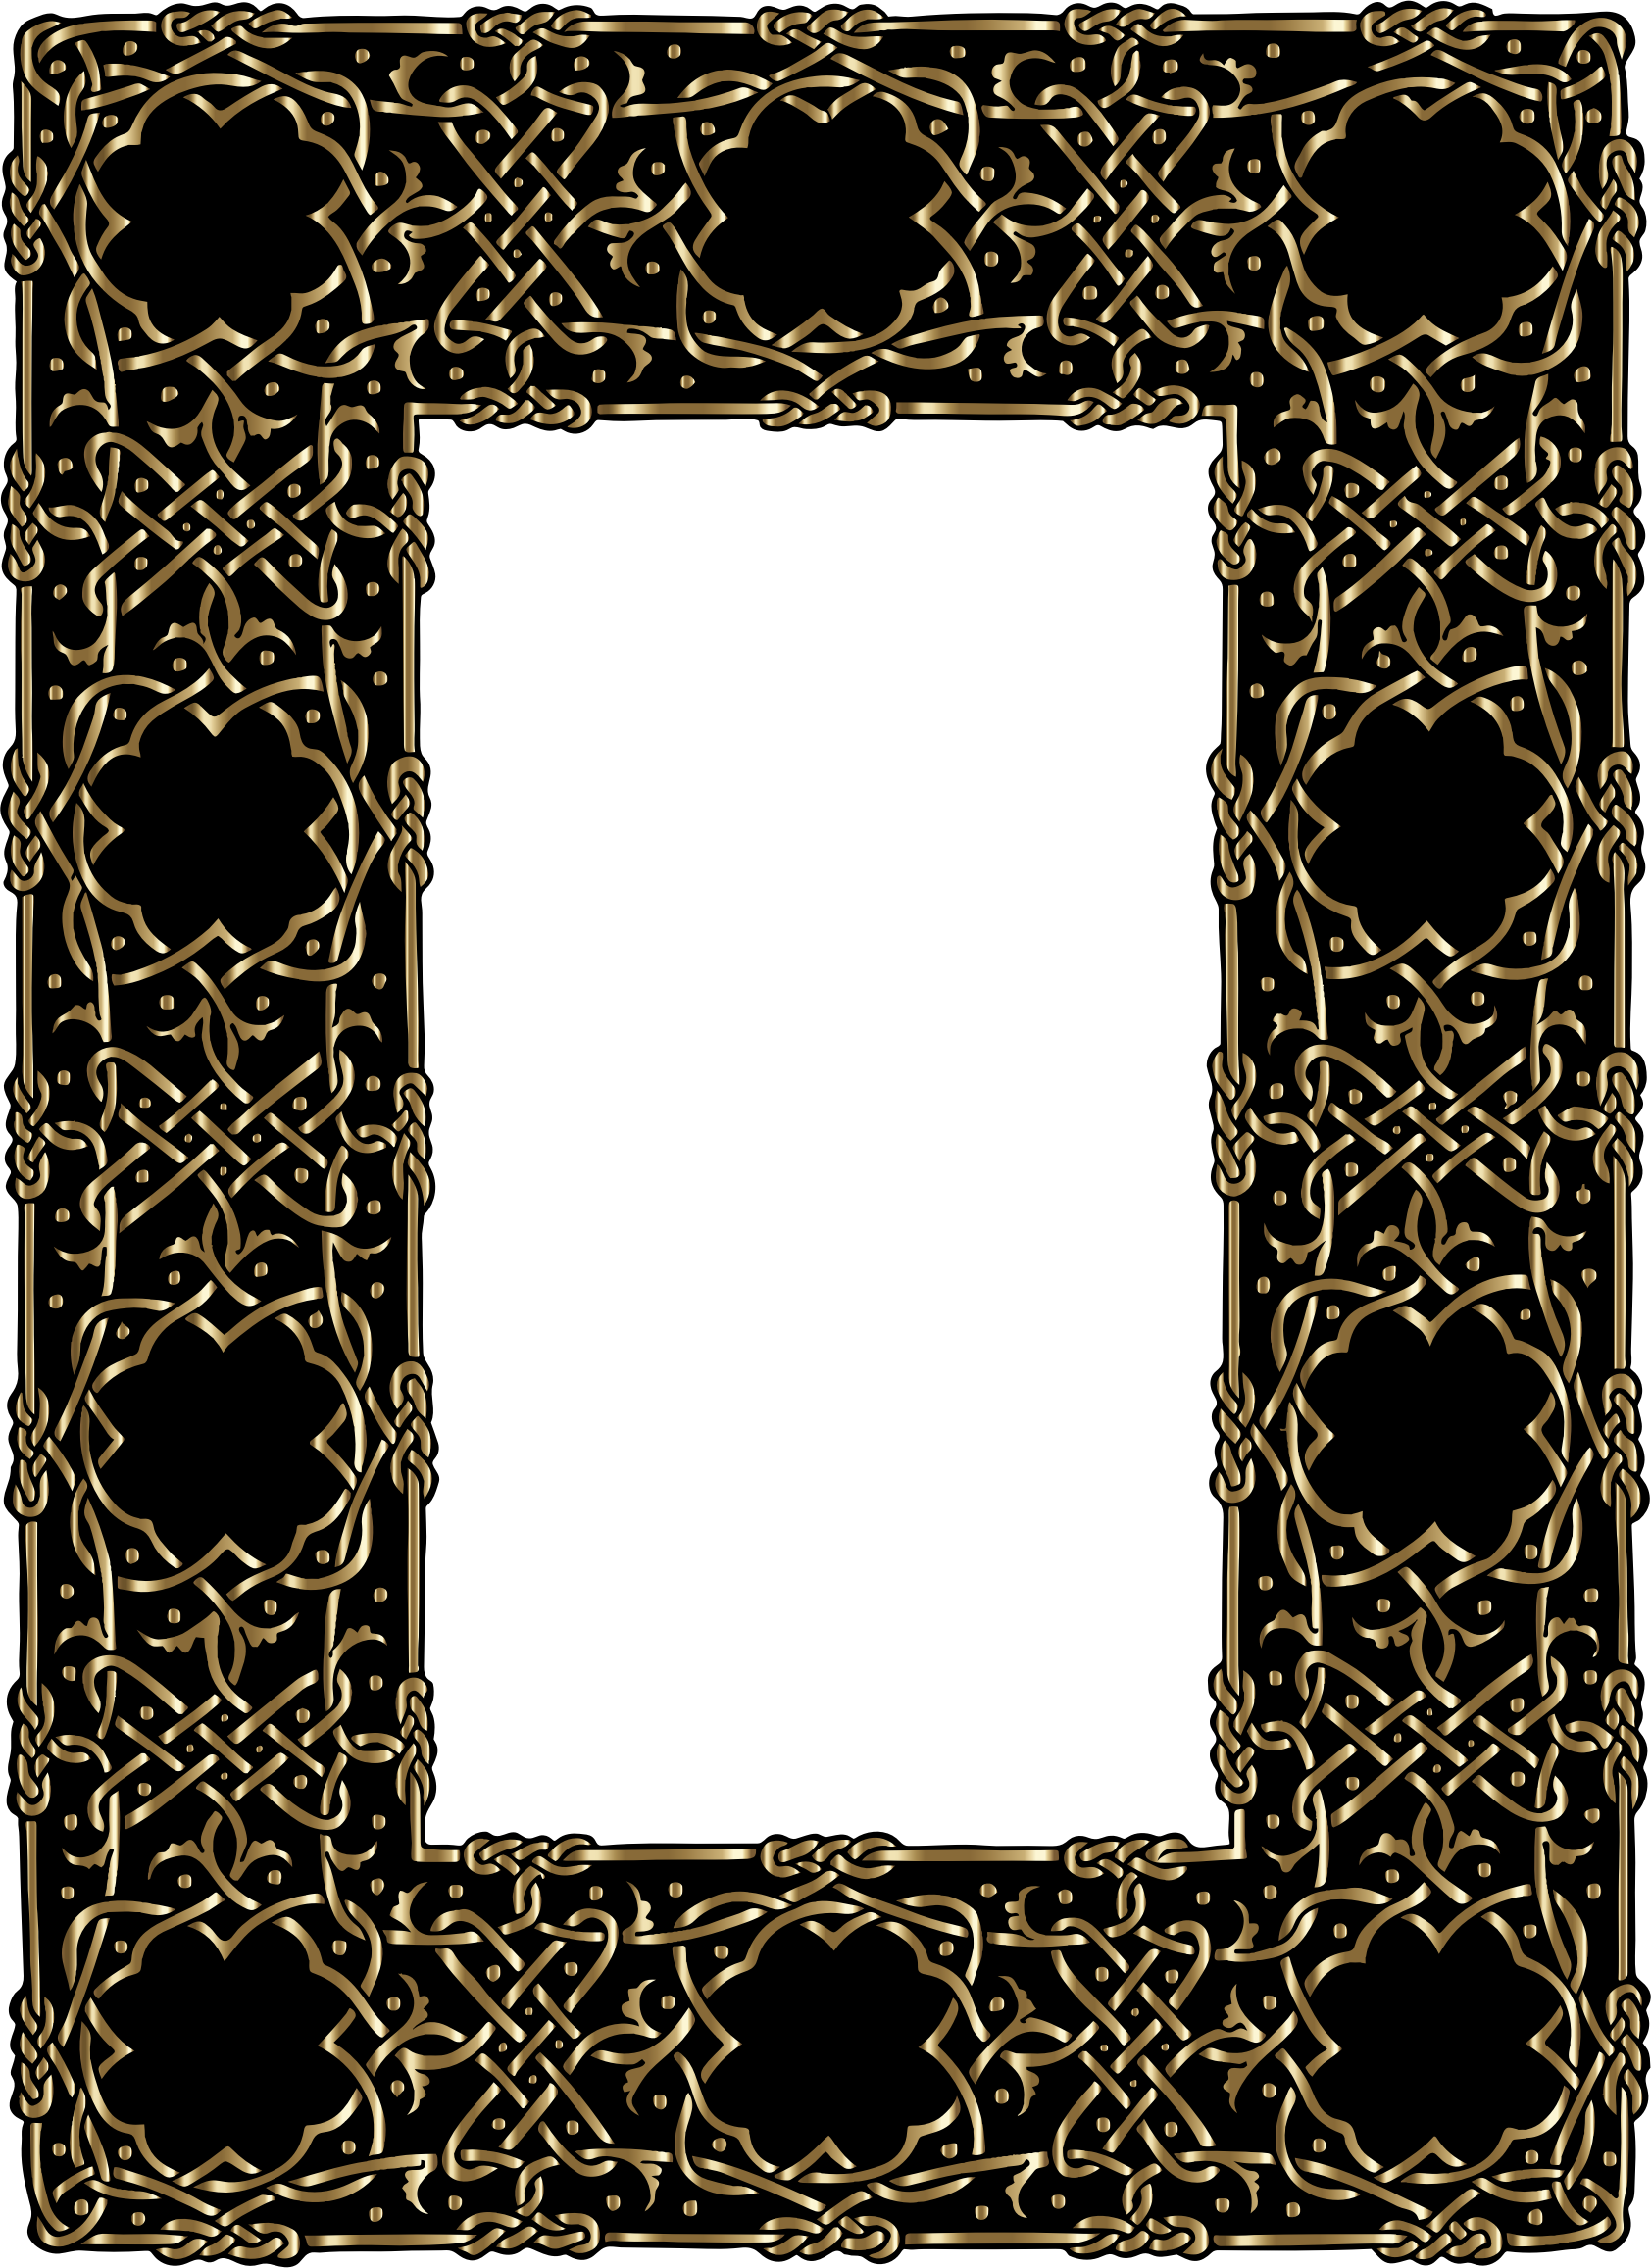 Gold Ornate Geometric Frame by GDJ